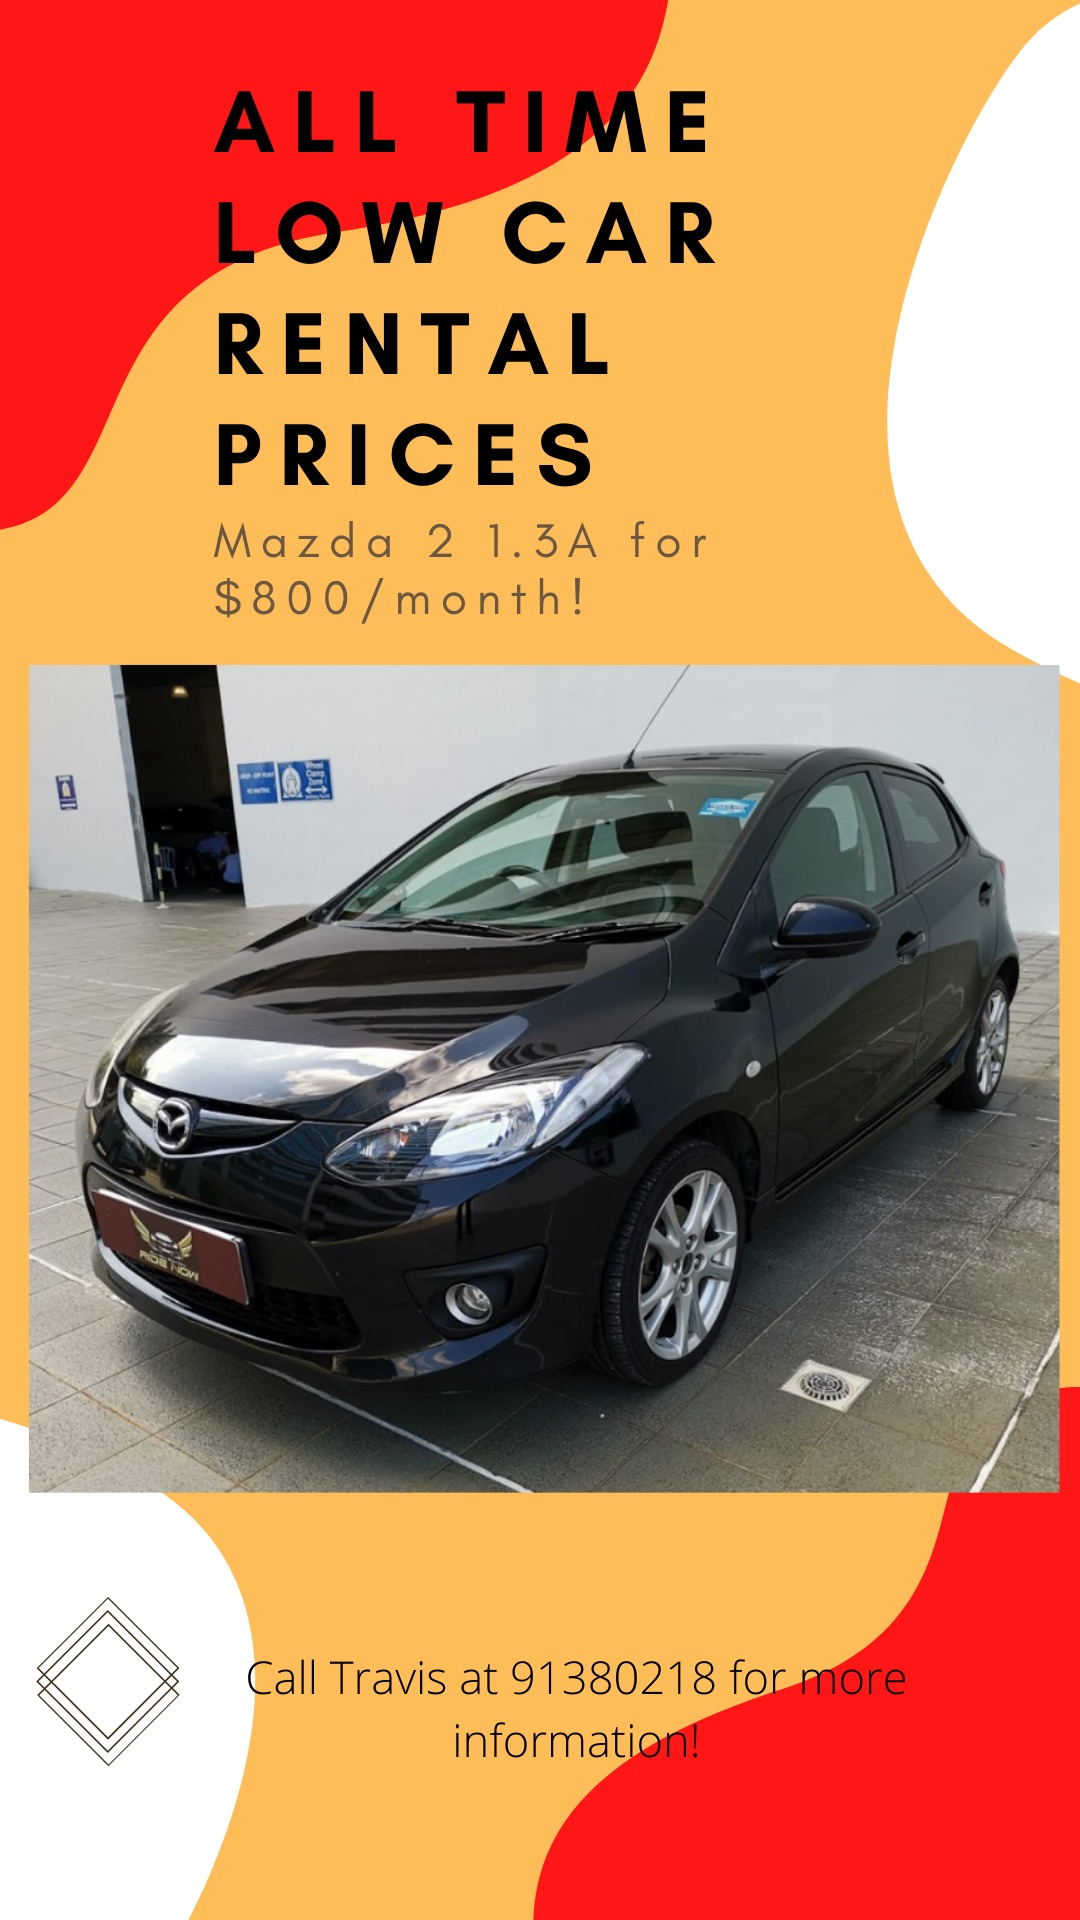 Mazda 2 1.3A - Hatchback (Grab/Delivery Ready) Cheap Price with Good Fuel Efficiency!